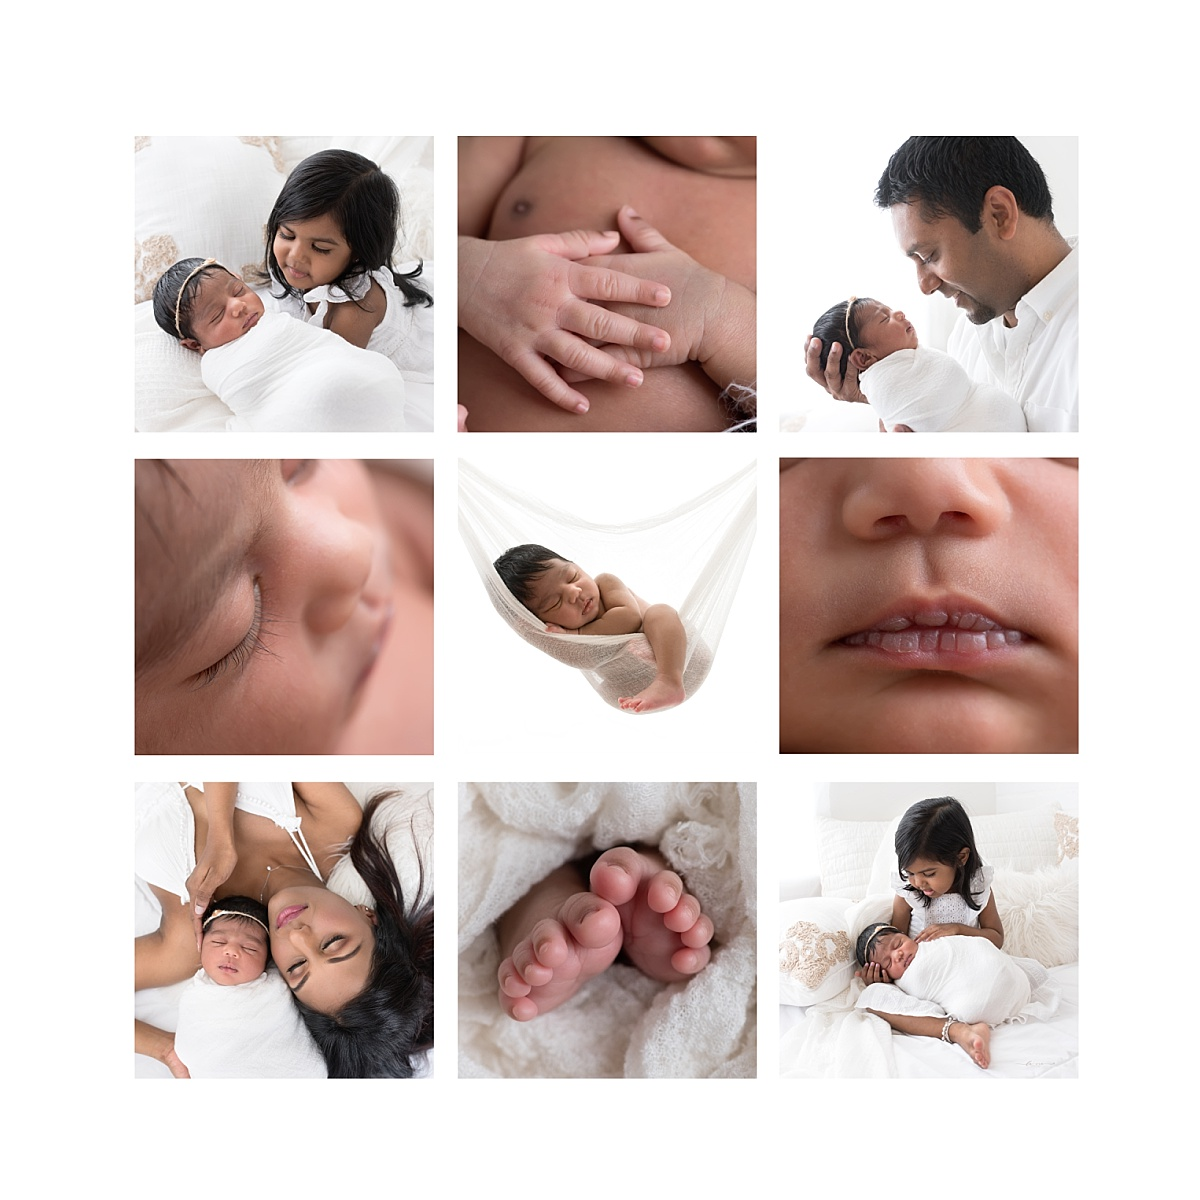 Nine image collage of newborn details with family images